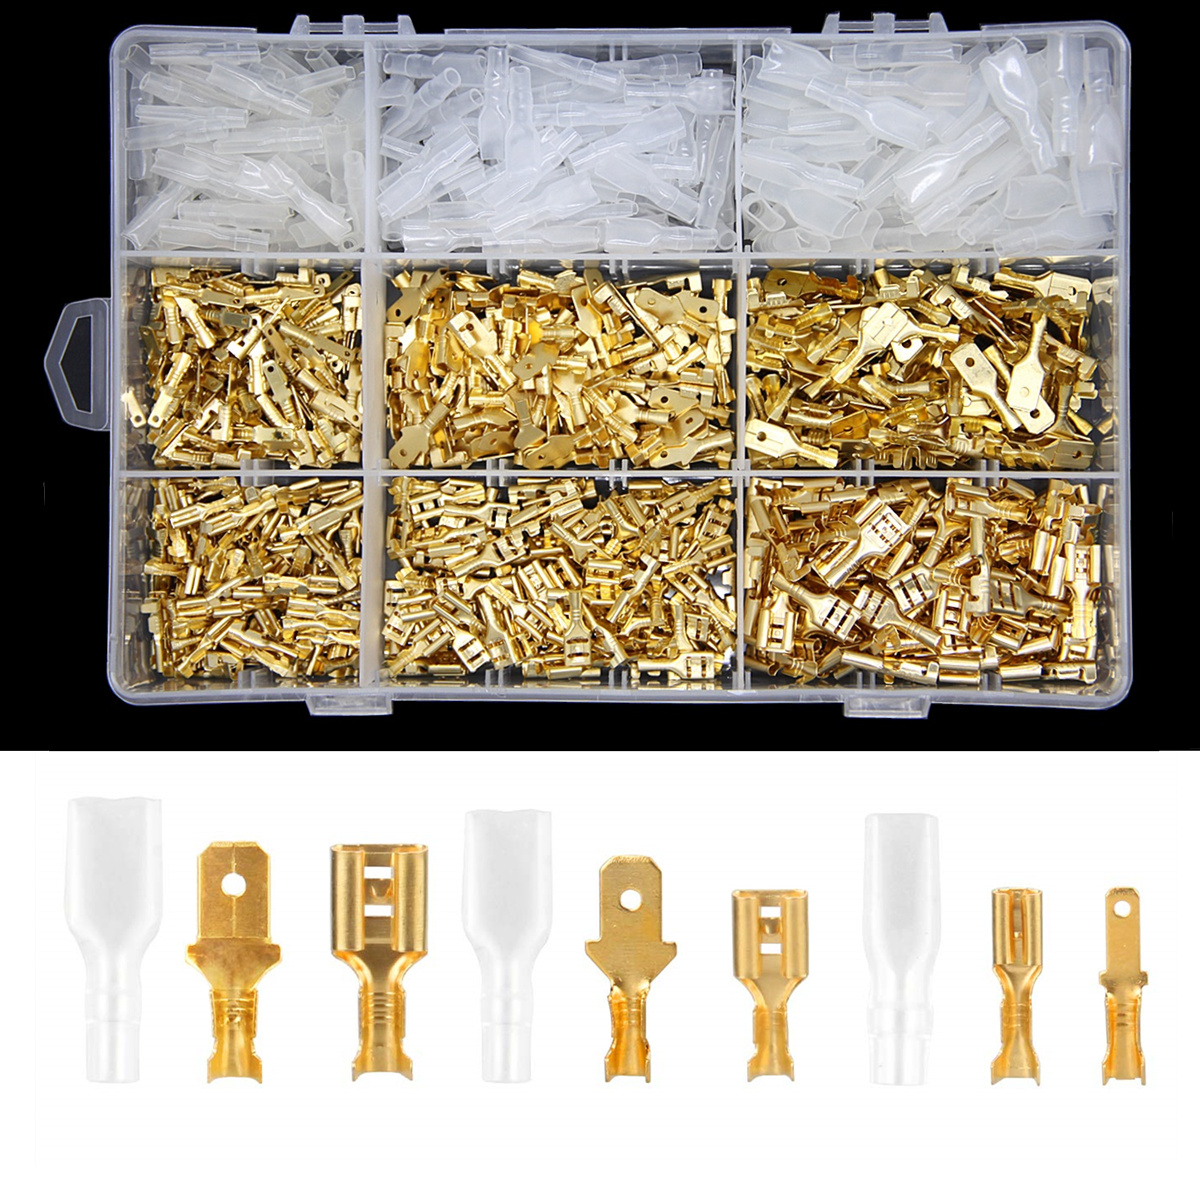 900Pcs/Set Insulated Electrical Wire Crimp Terminals 2.8/4.8/6.3mm Spade Connectors Assortment Kit With Box